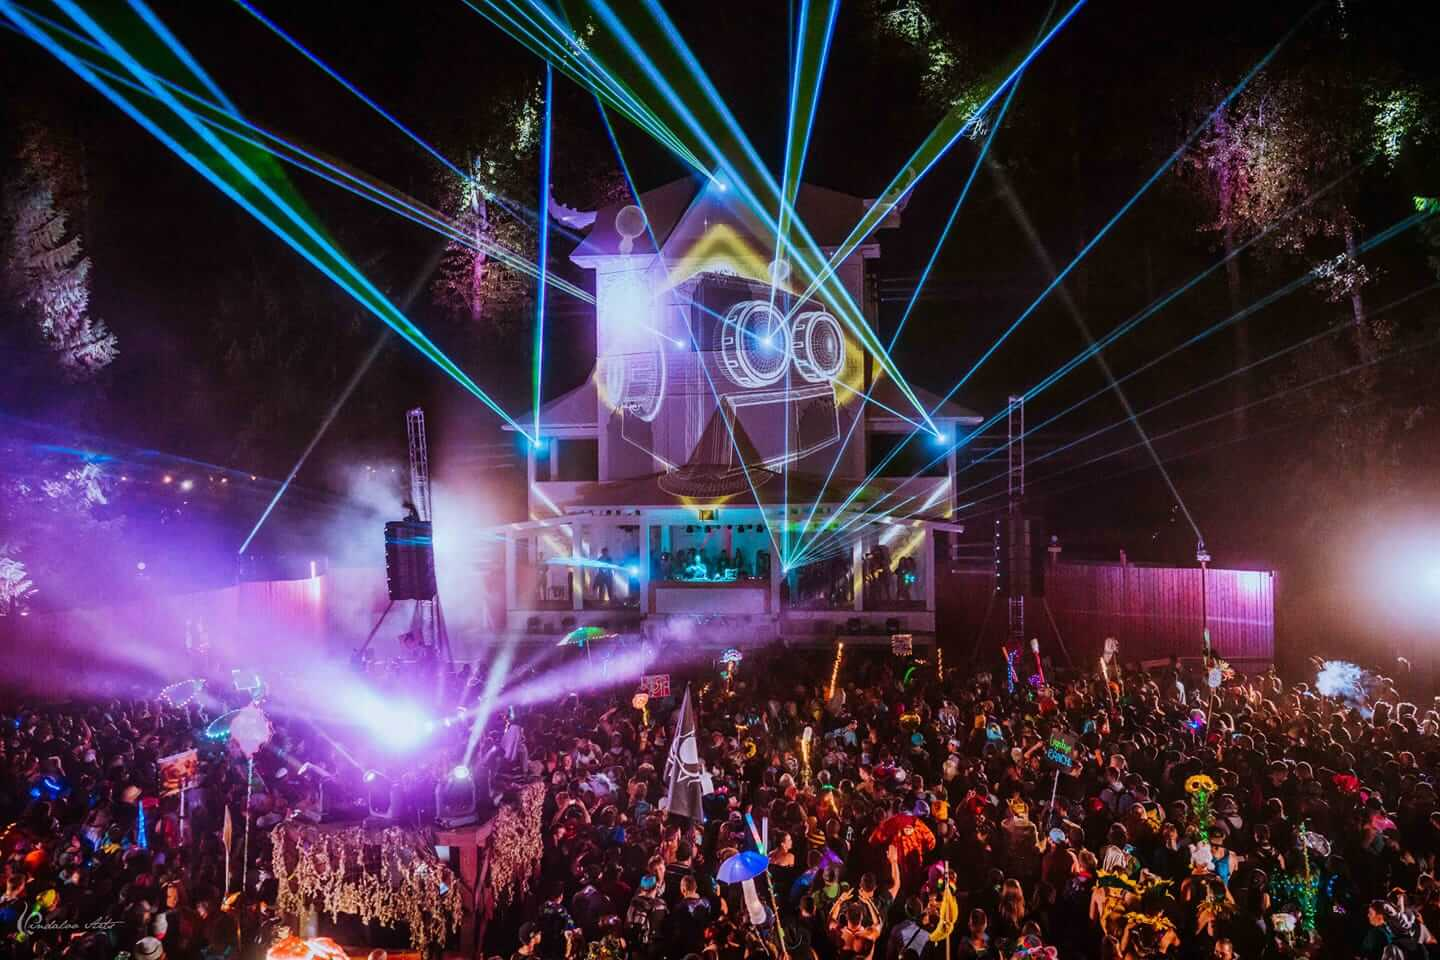 stage, light show and crowd at shambhala